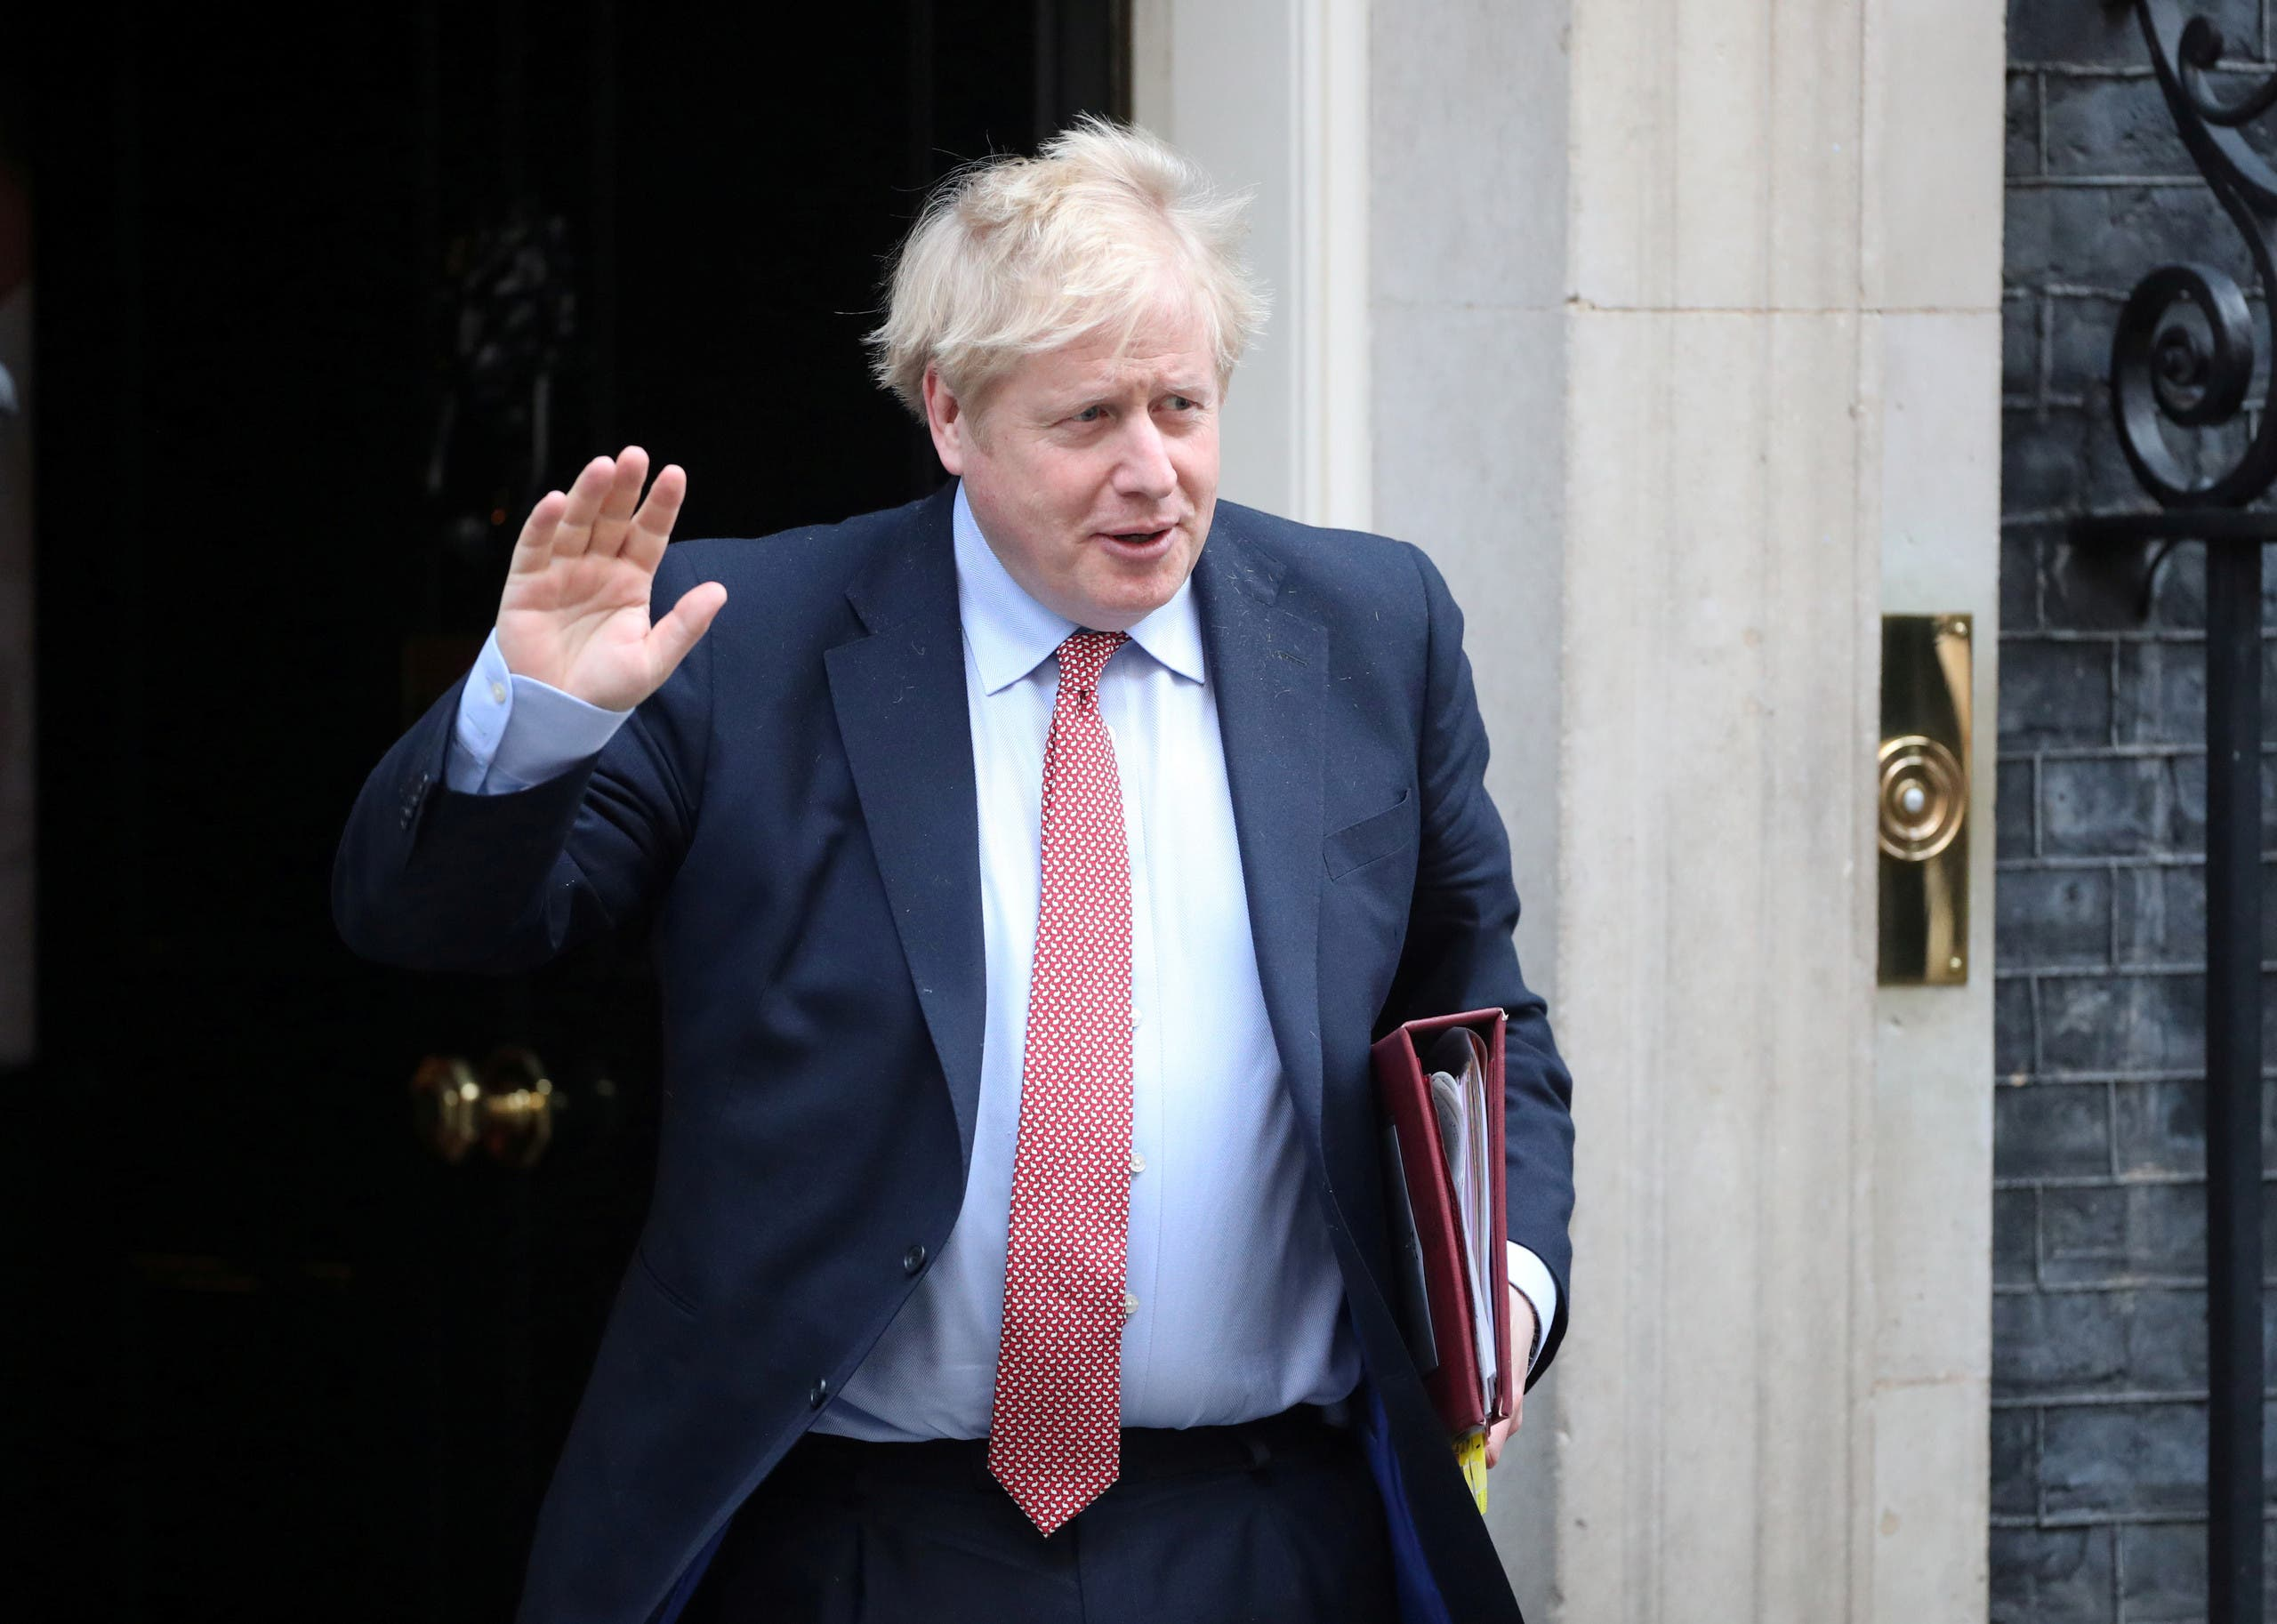 Britain's Prime Minister Boris Johnson waves as he leaves Downing Street in. London, Britain on March 25, 2020. (Reuters)